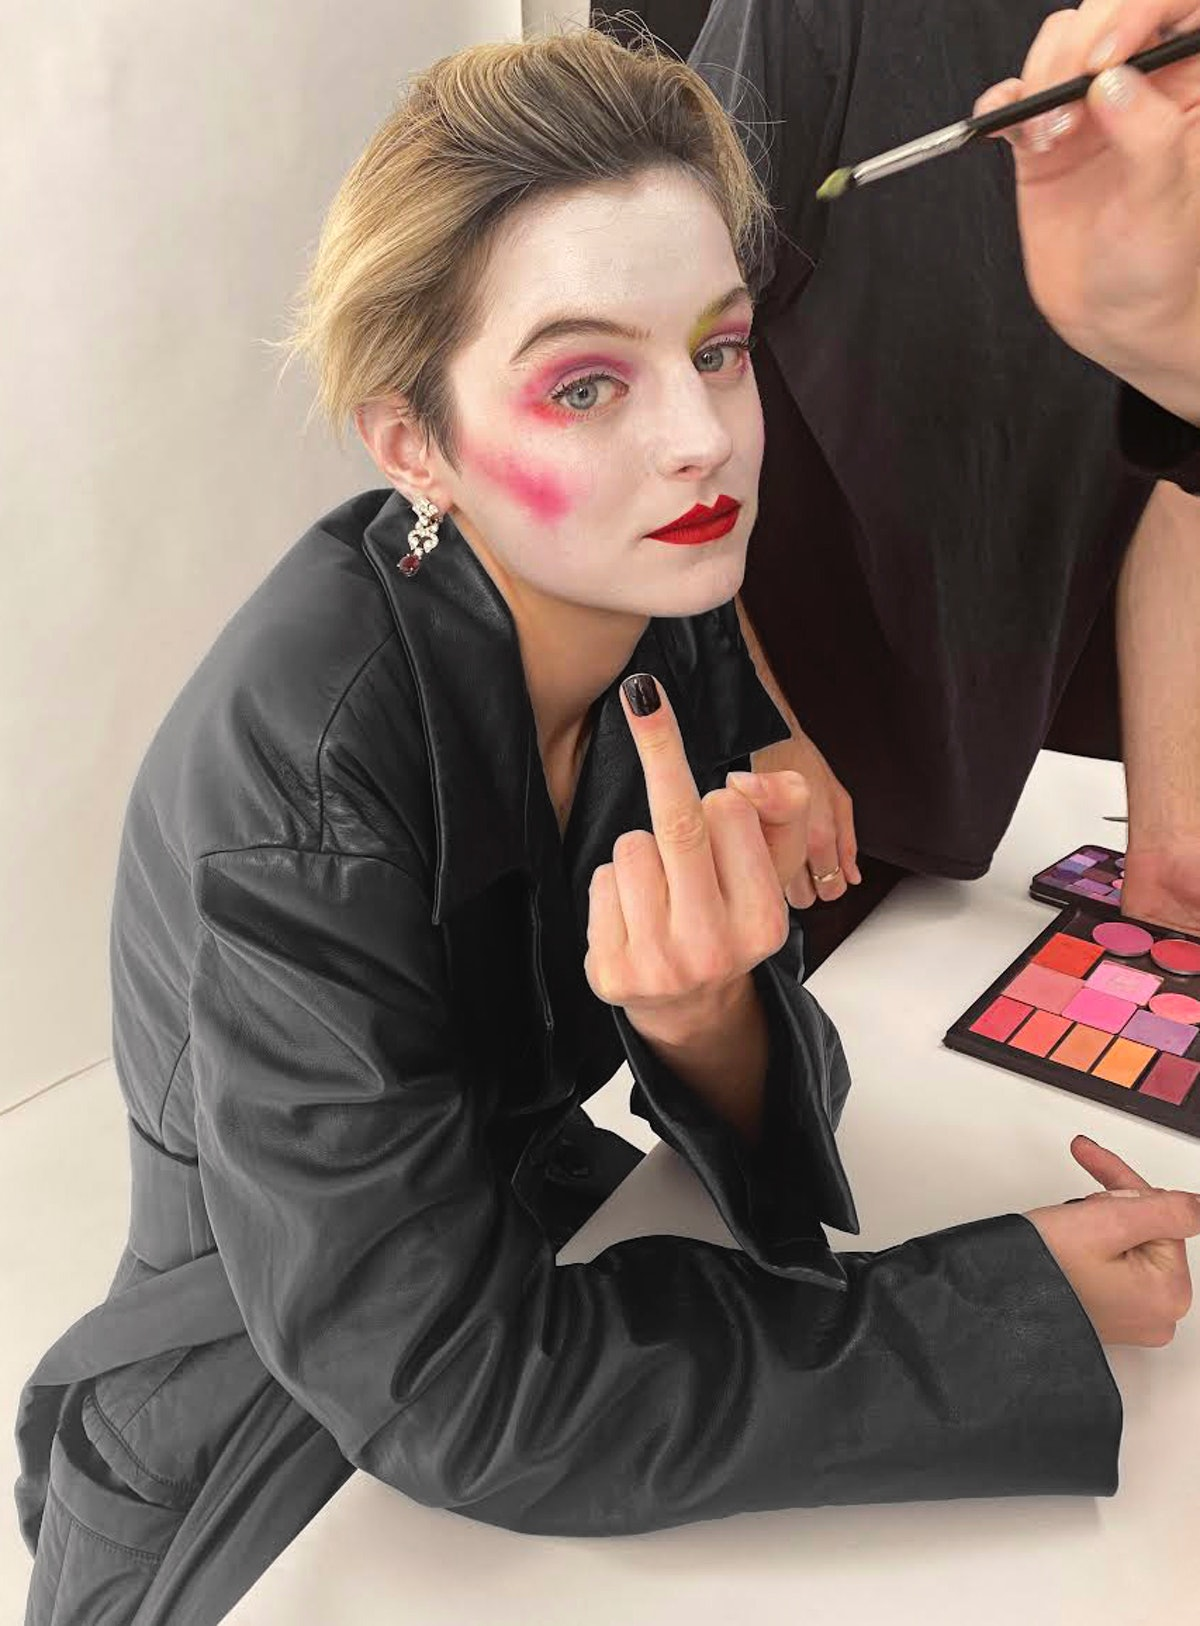 Emma Corrin getting an extreme beauty look.